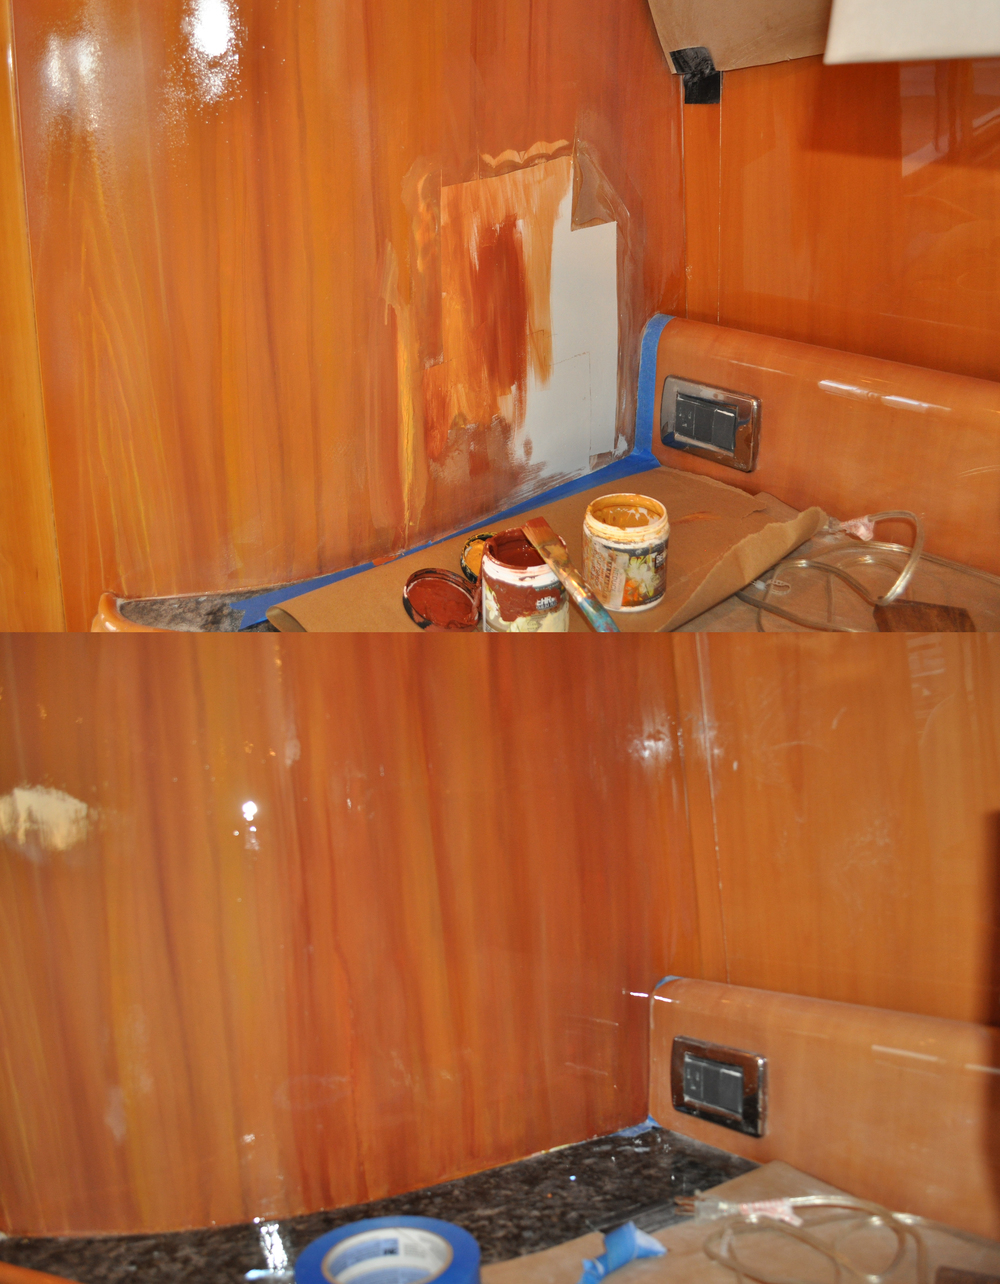 wood damage cover up.jpg